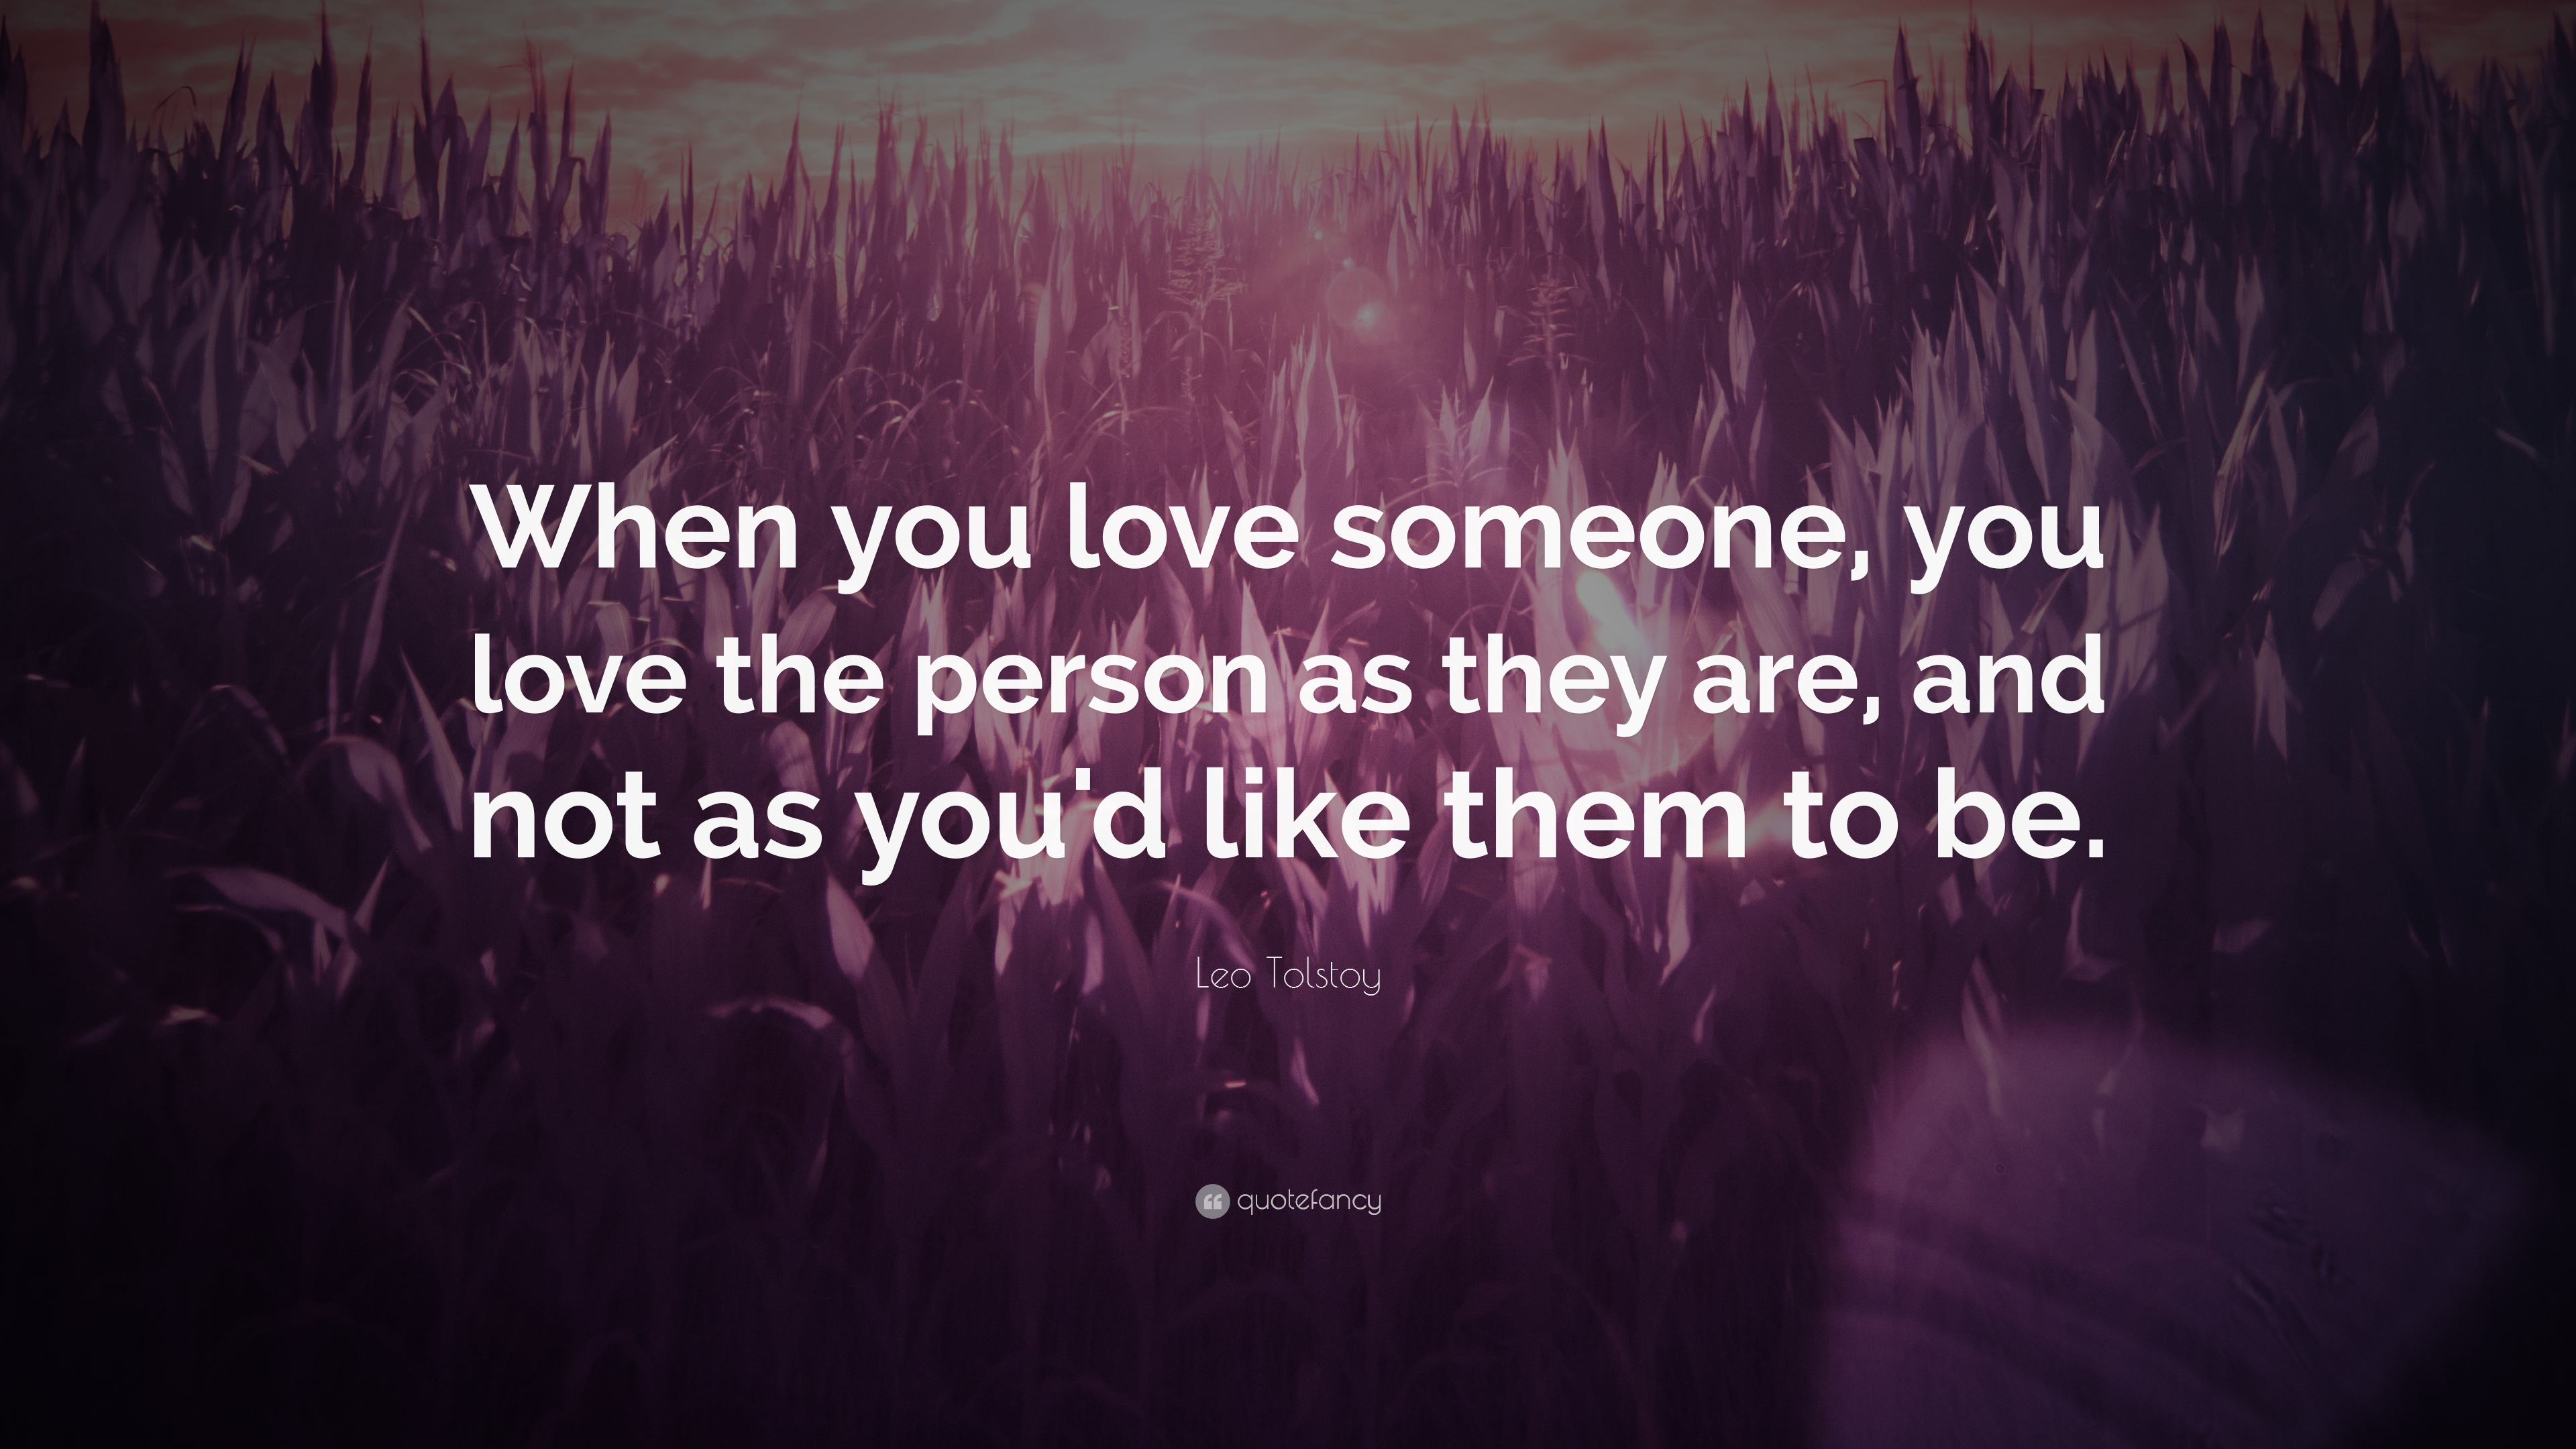 Leo Tolstoy Quote: When you love someone, you love the